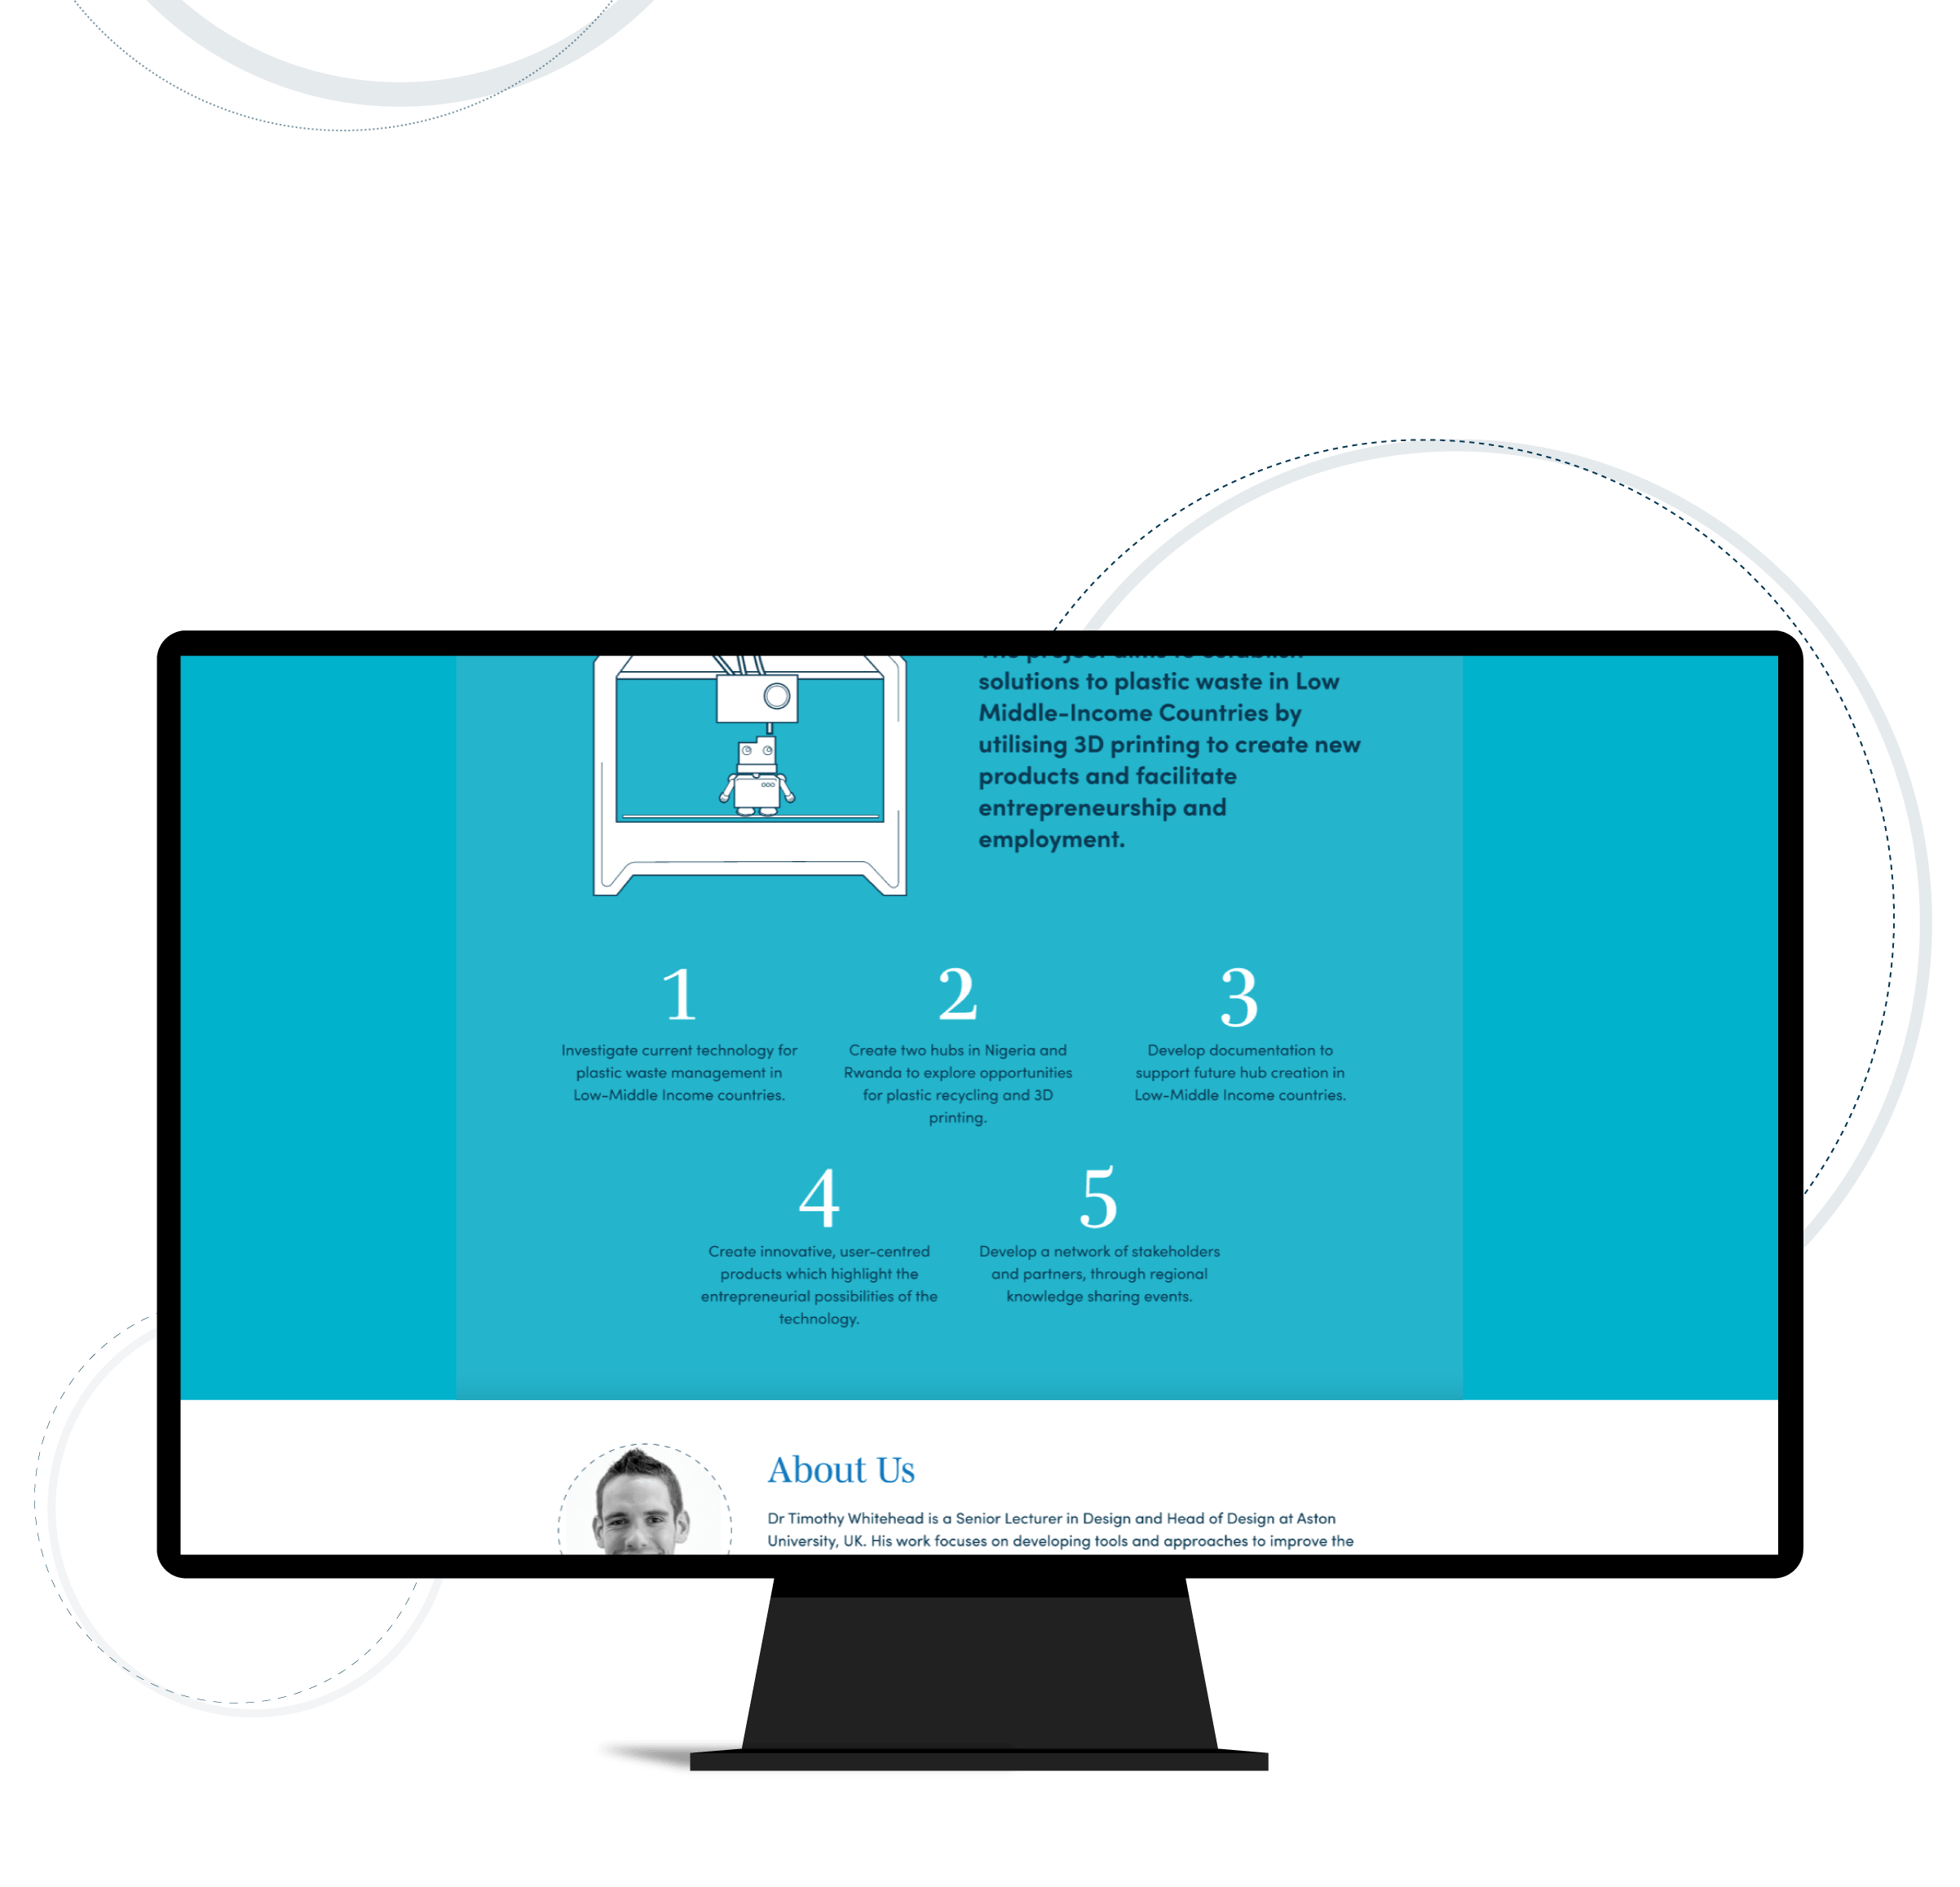 Website design showing aims for the Circular Plastic project